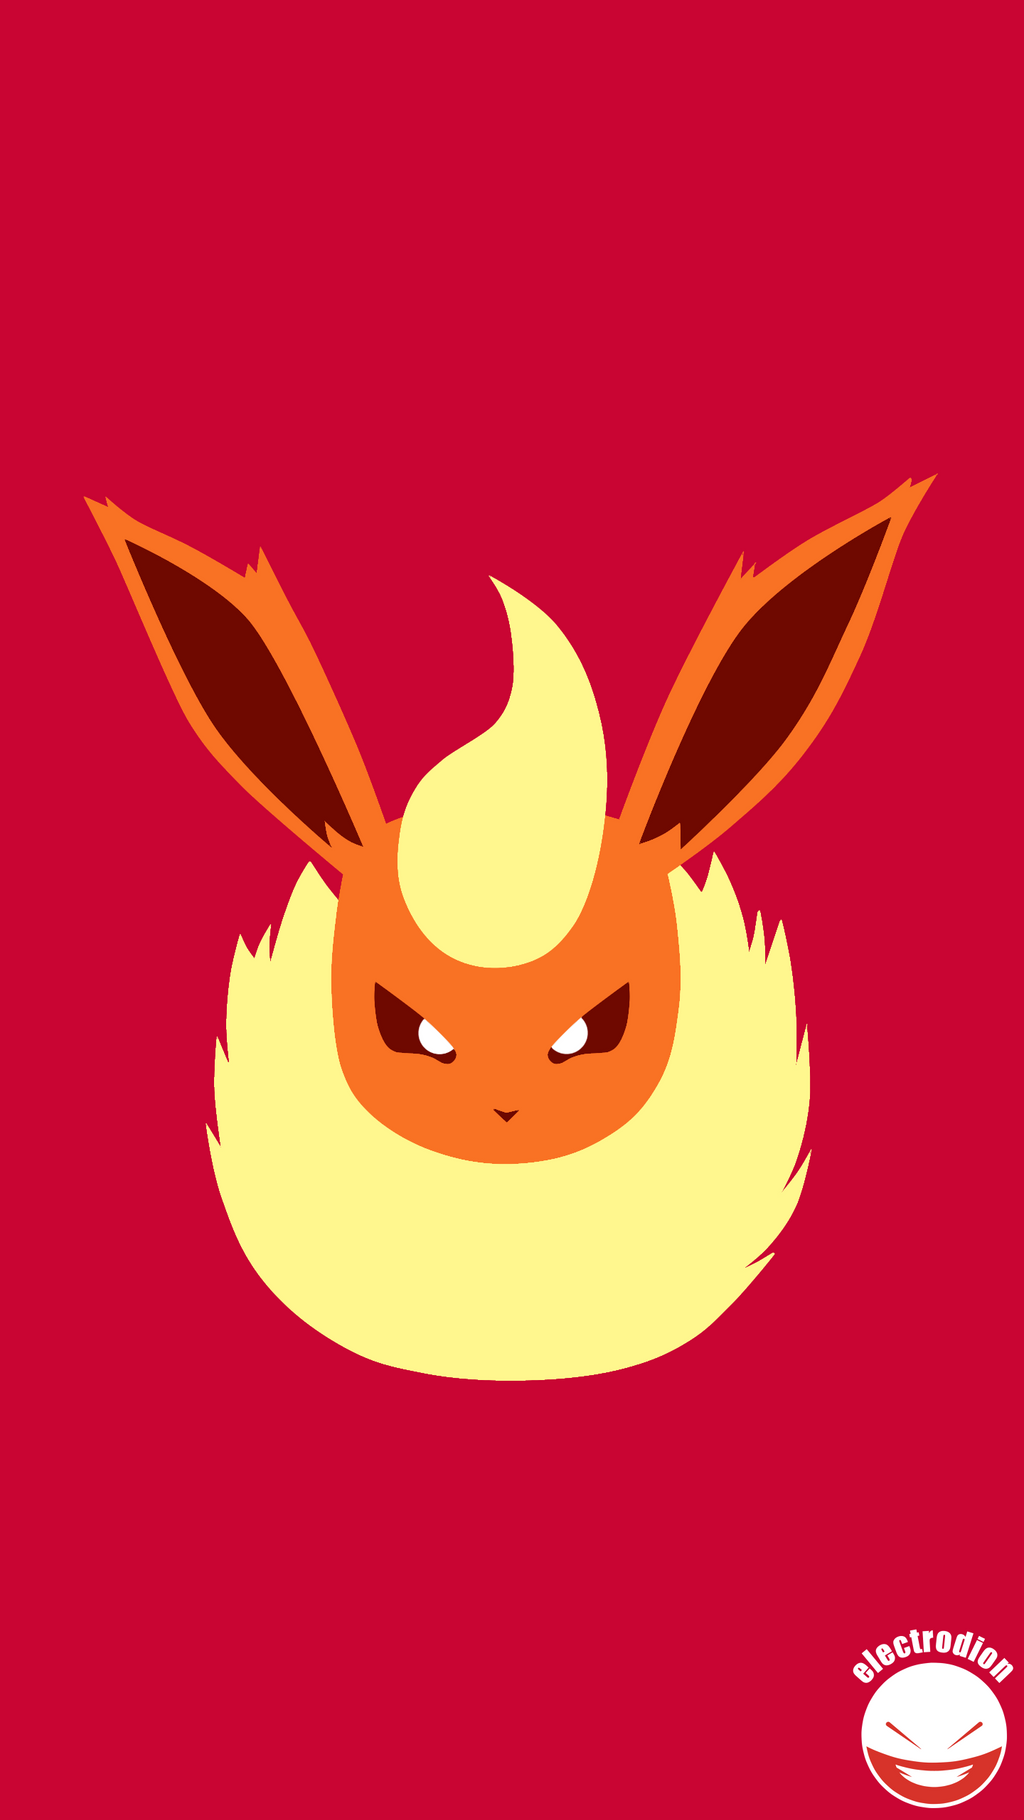 Flareon minimal pokemon art quad hd qhd by electrodion for Minimal art hd